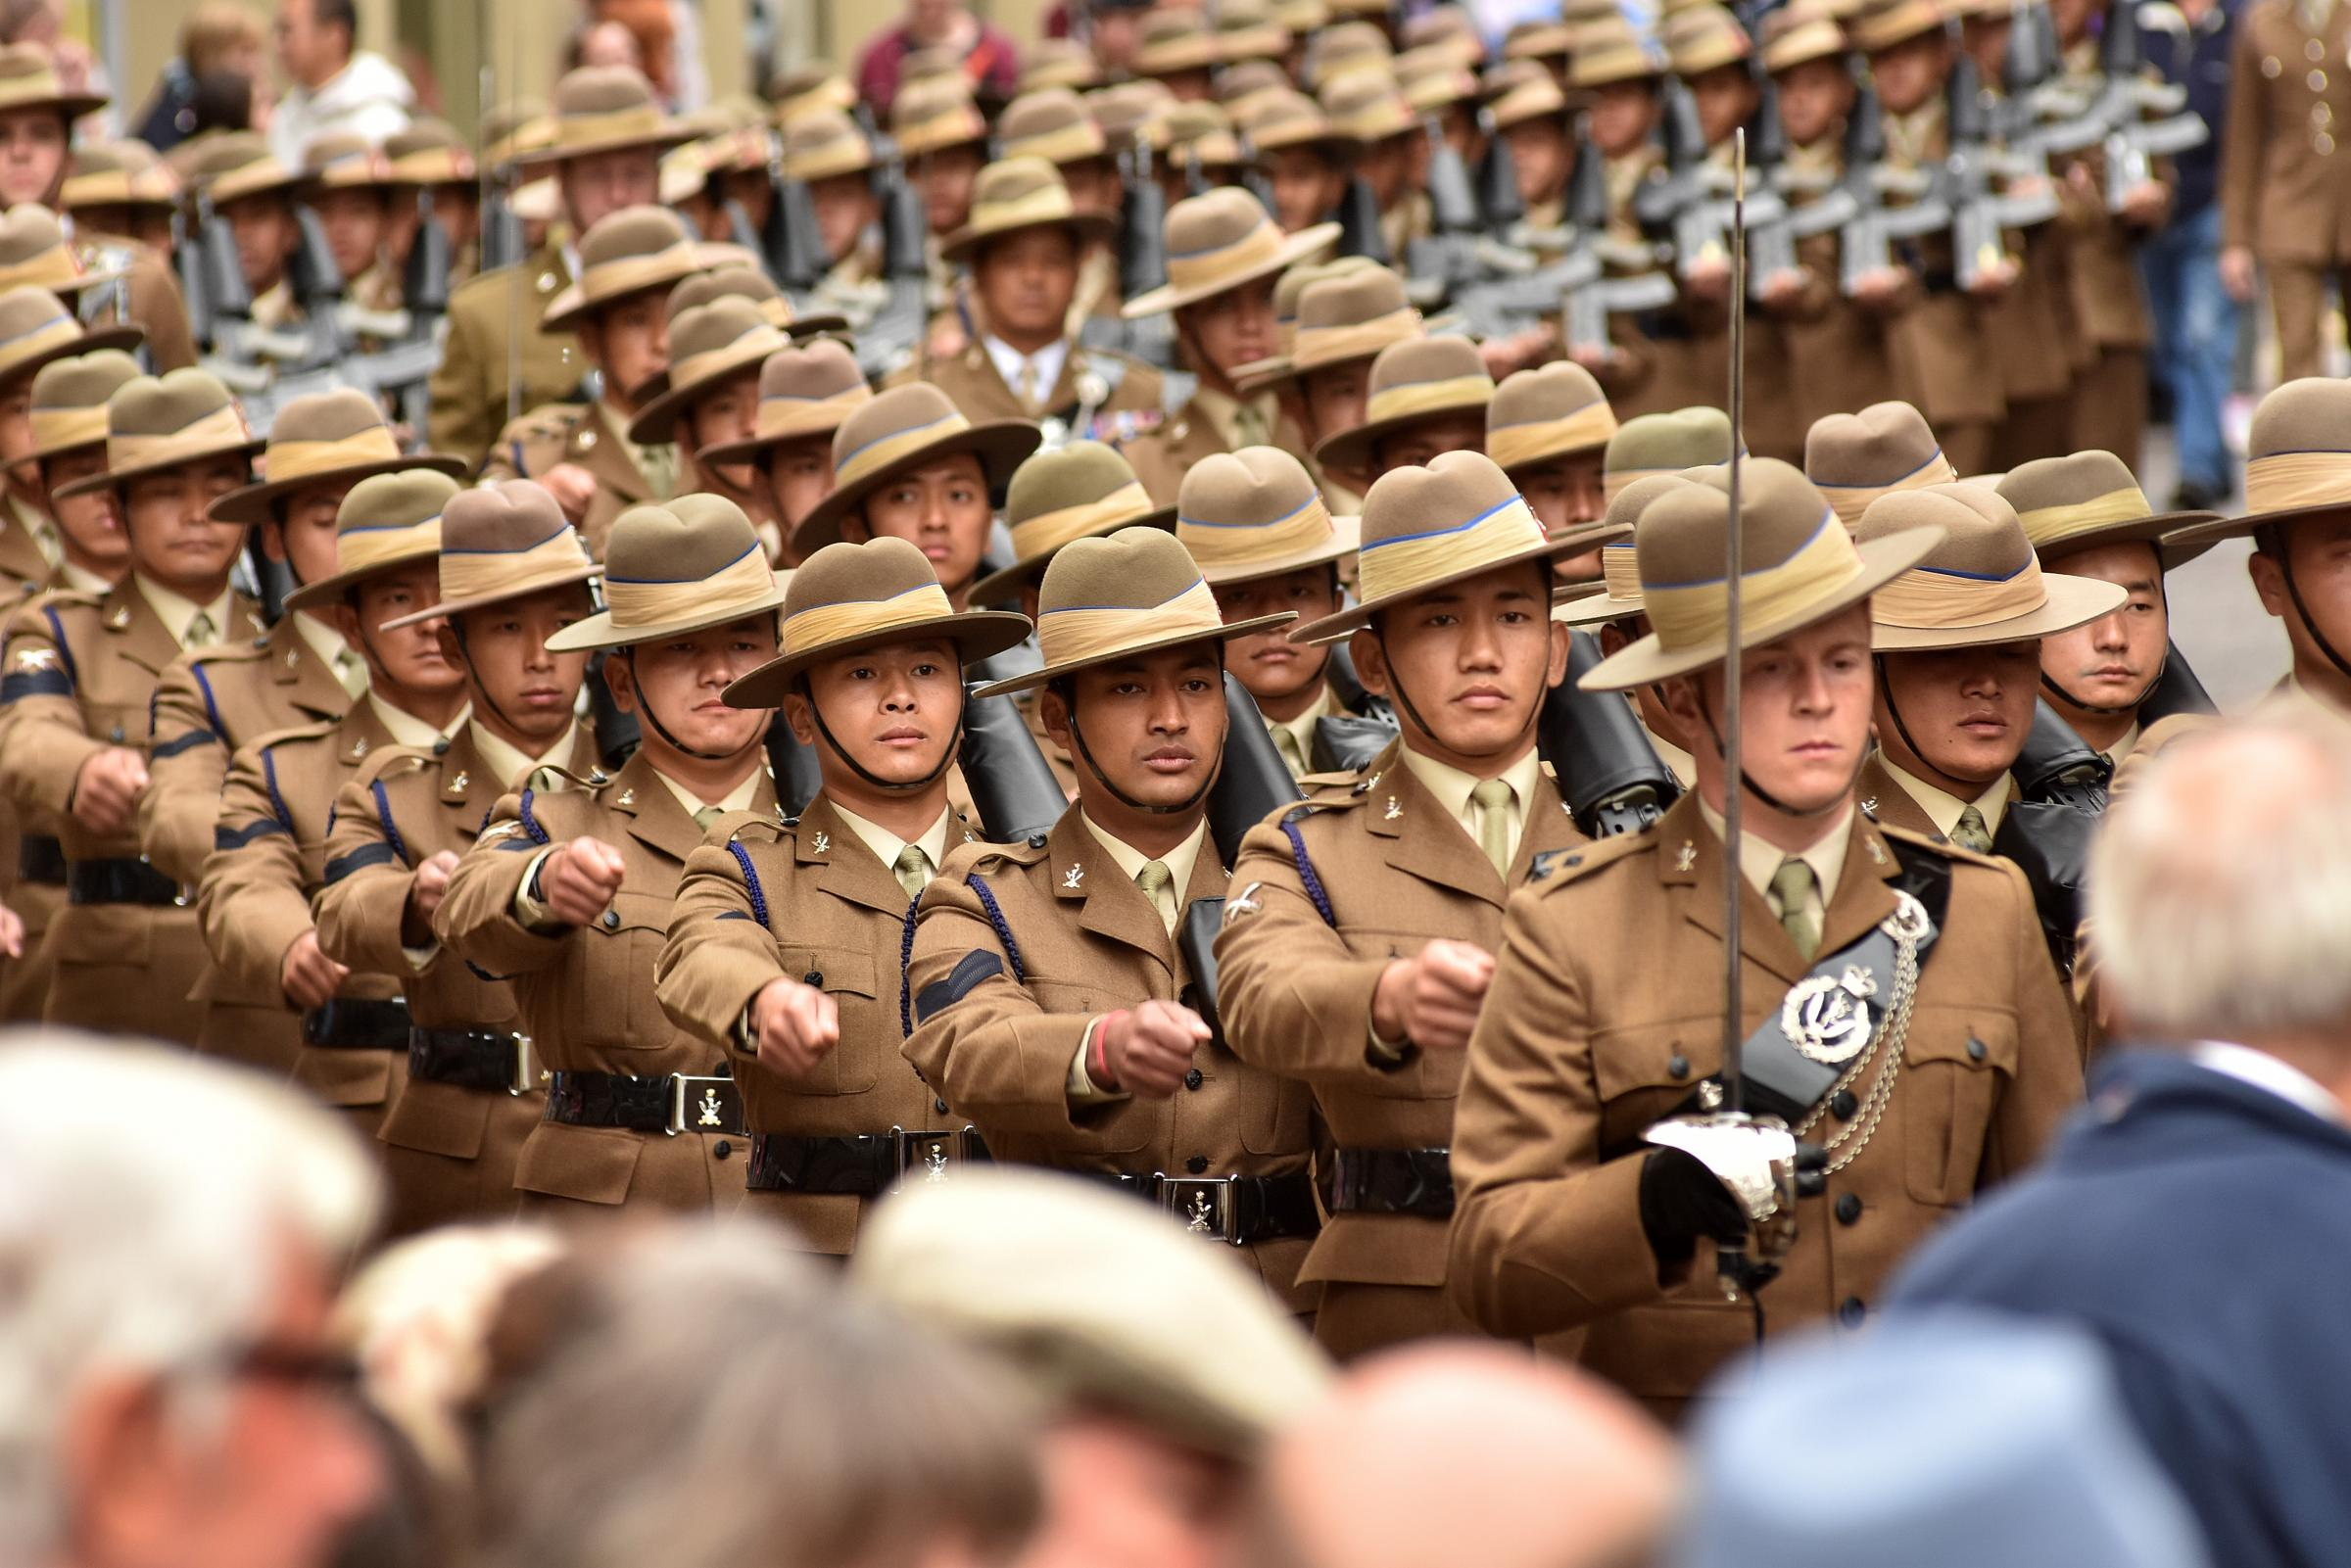 Gurkhas parade through York